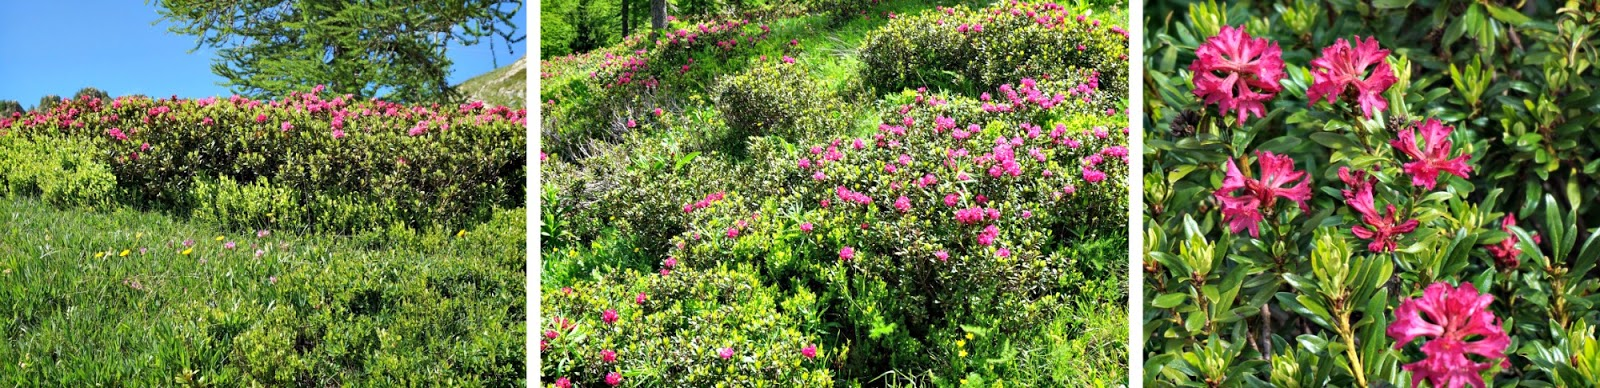 Rhododendrons in Isola 2000